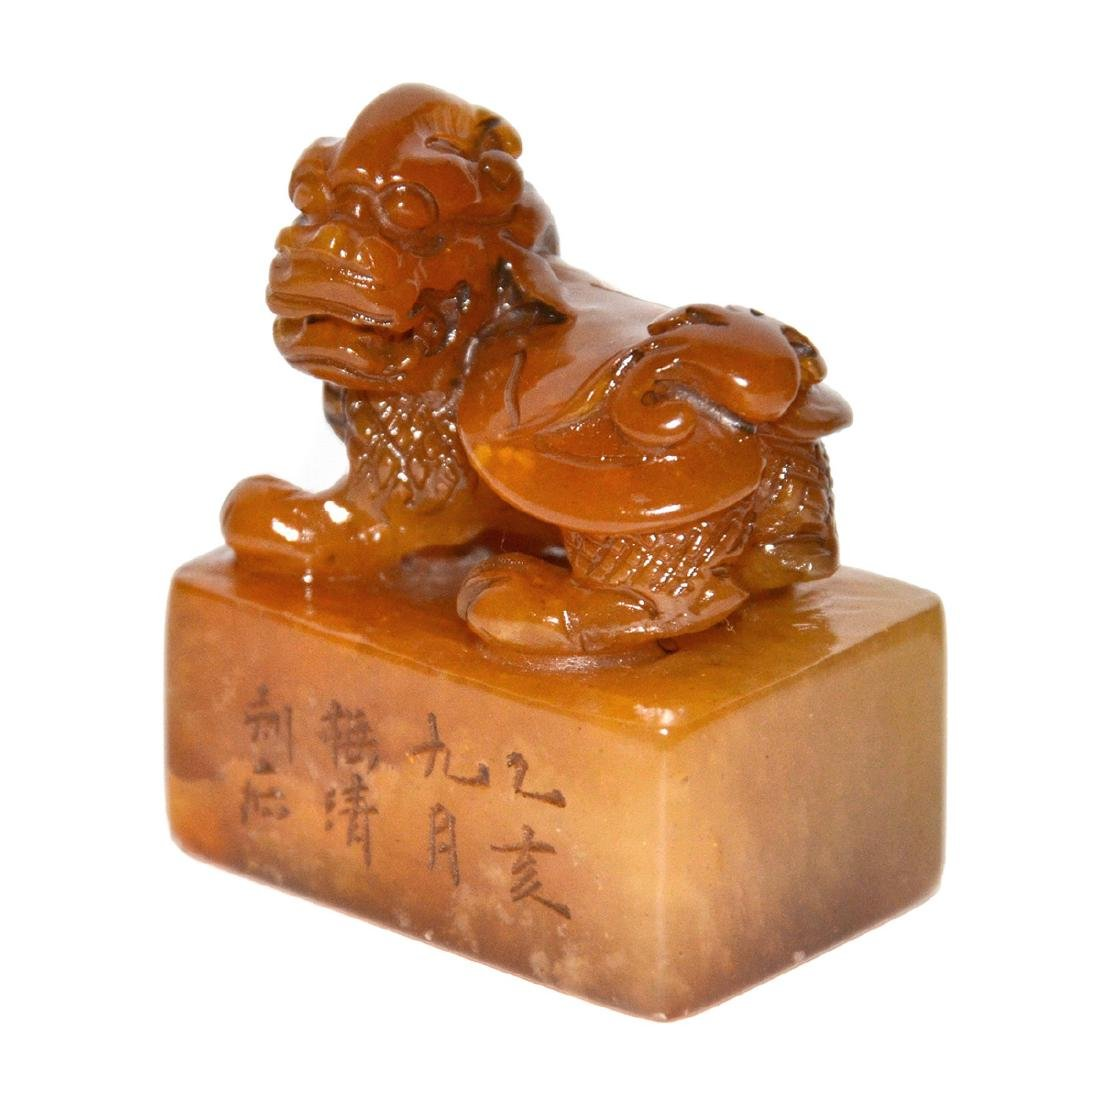 Qing Dynasty, A Pair of Tianhuang Stone Seal with - 8